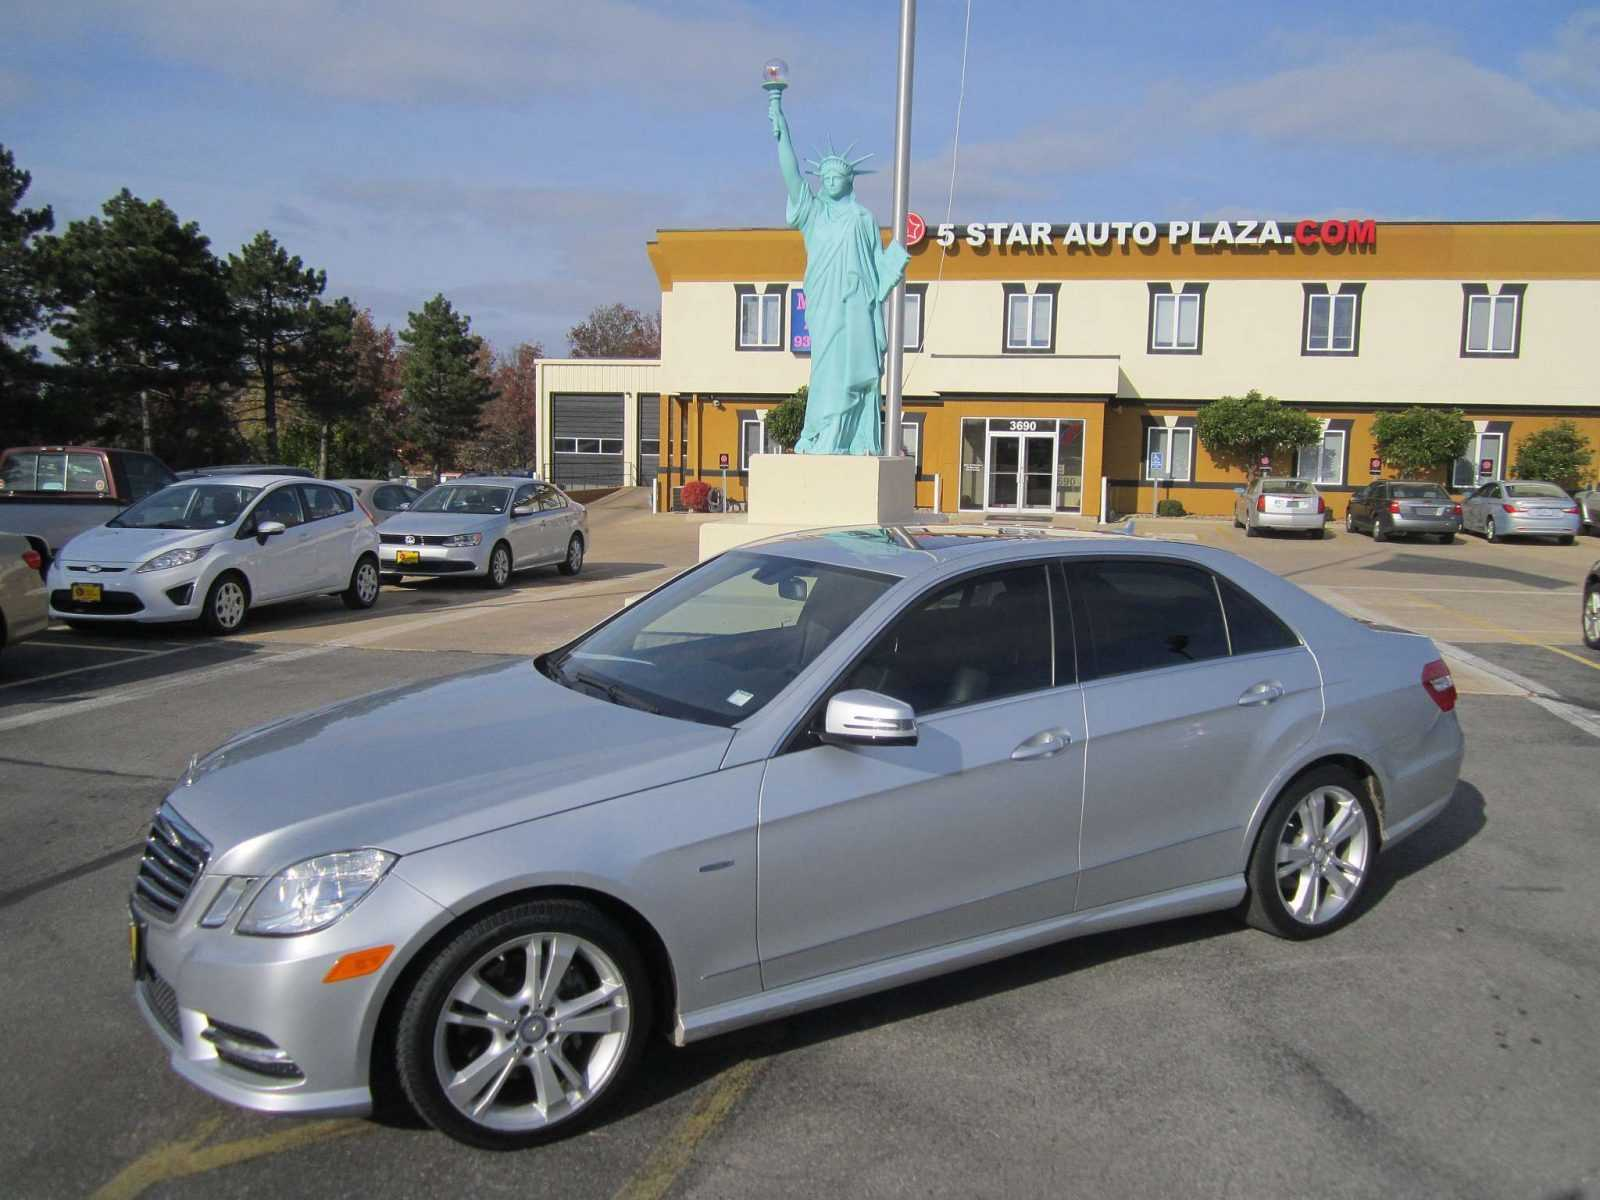 Pre owned mercedes cars for sale in st charles mo for Plaza mercedes benz service